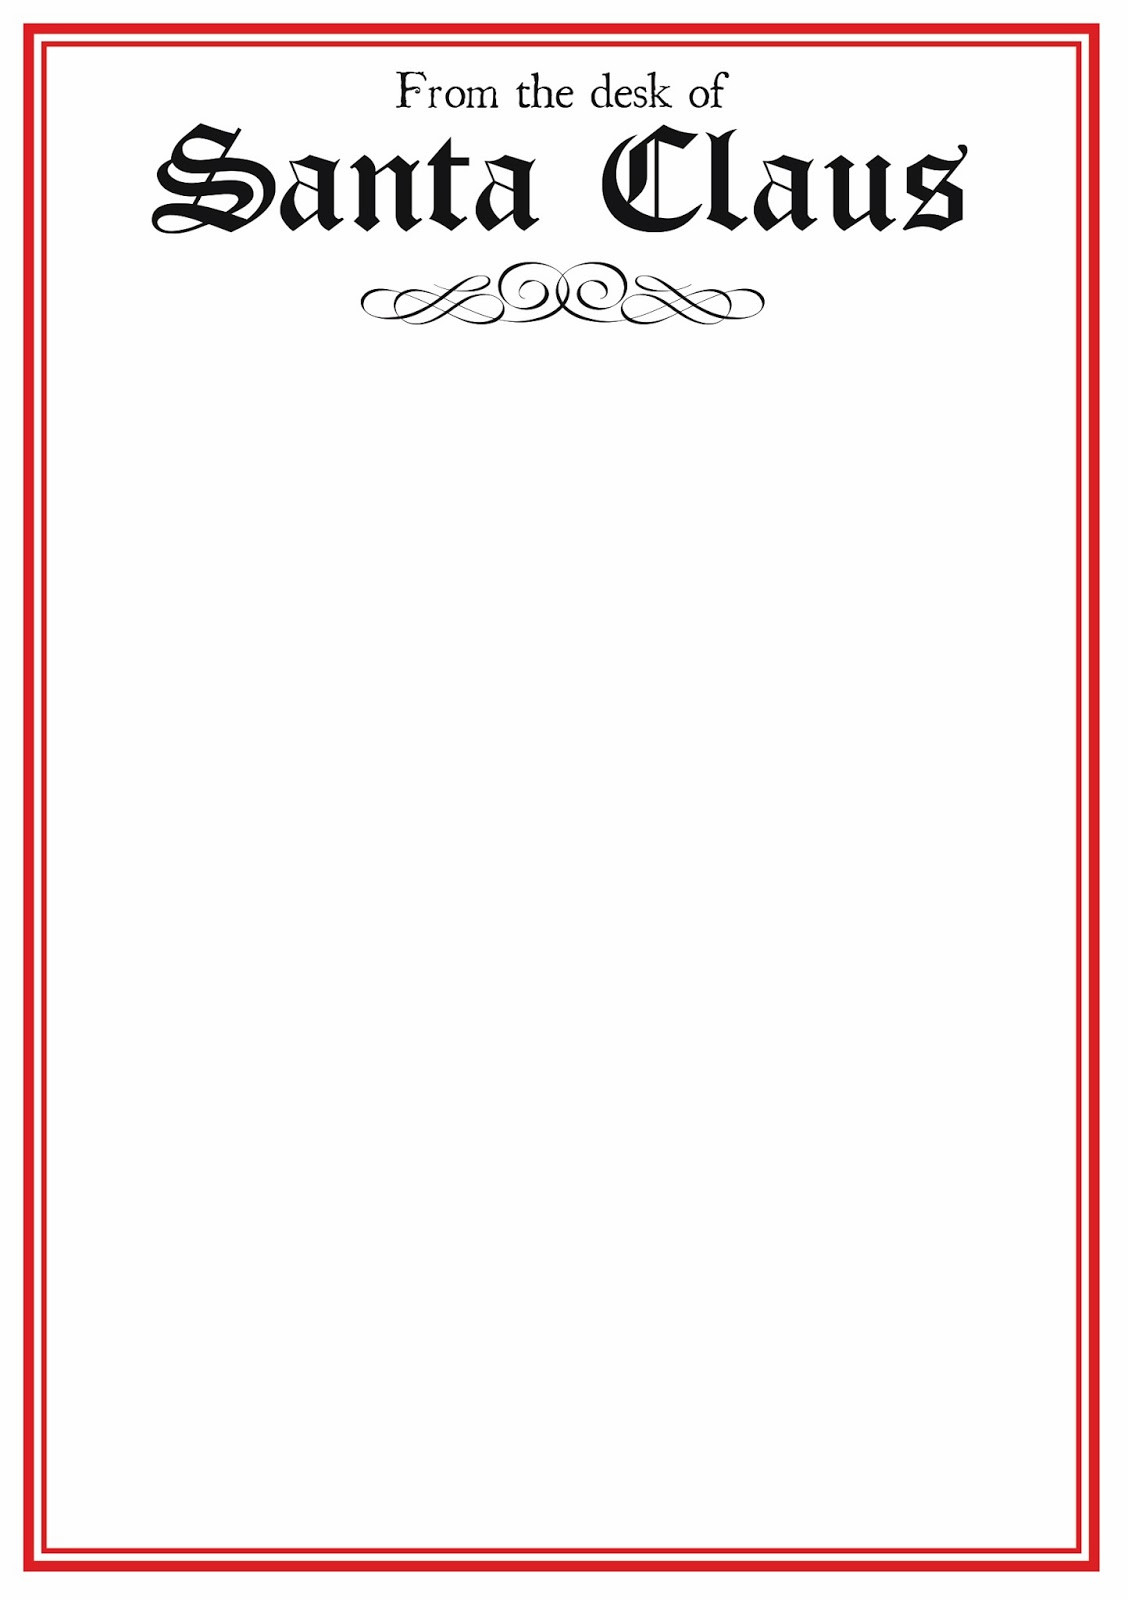 photograph about Free Printable Letter From Santa Template called No cost Printable Letter Versus Santa Template Phrase Range